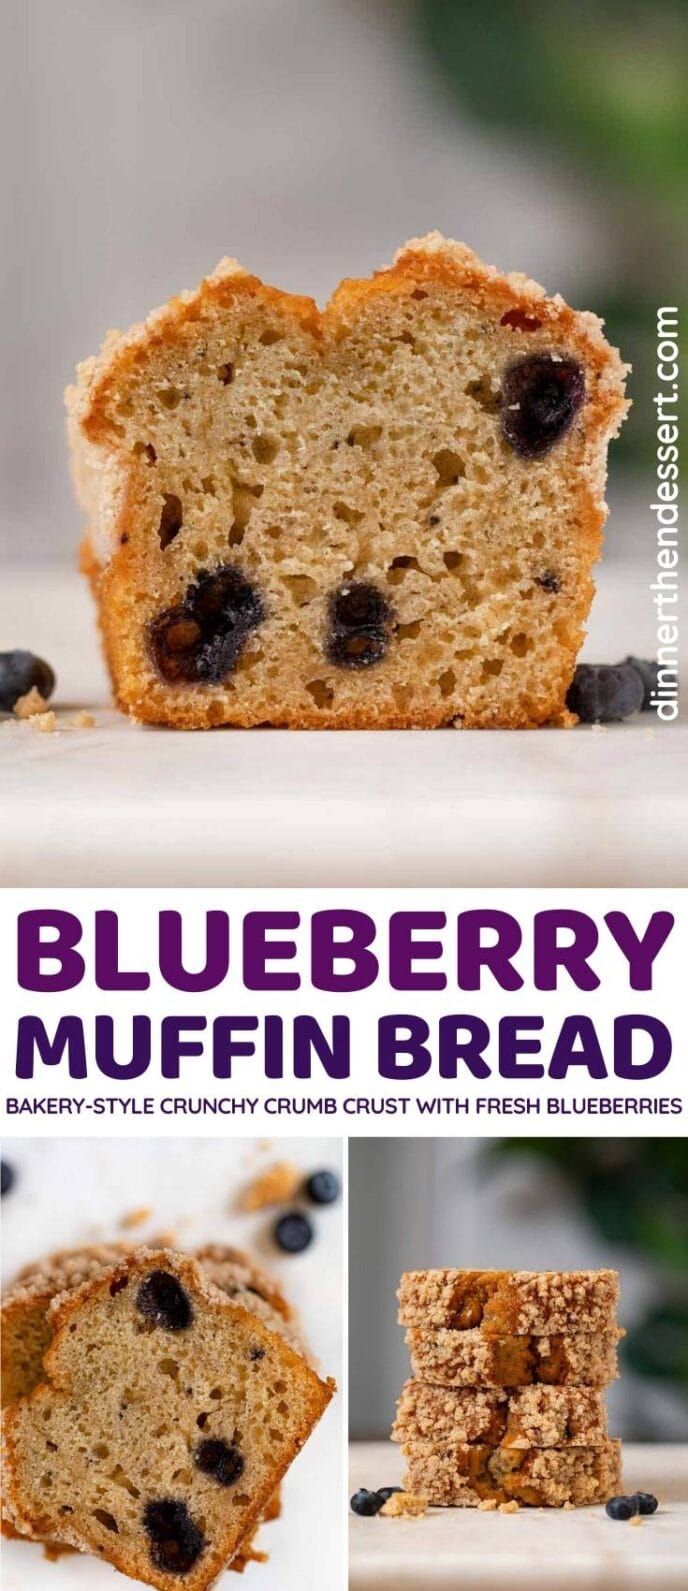 Blueberry Muffin Bread collage